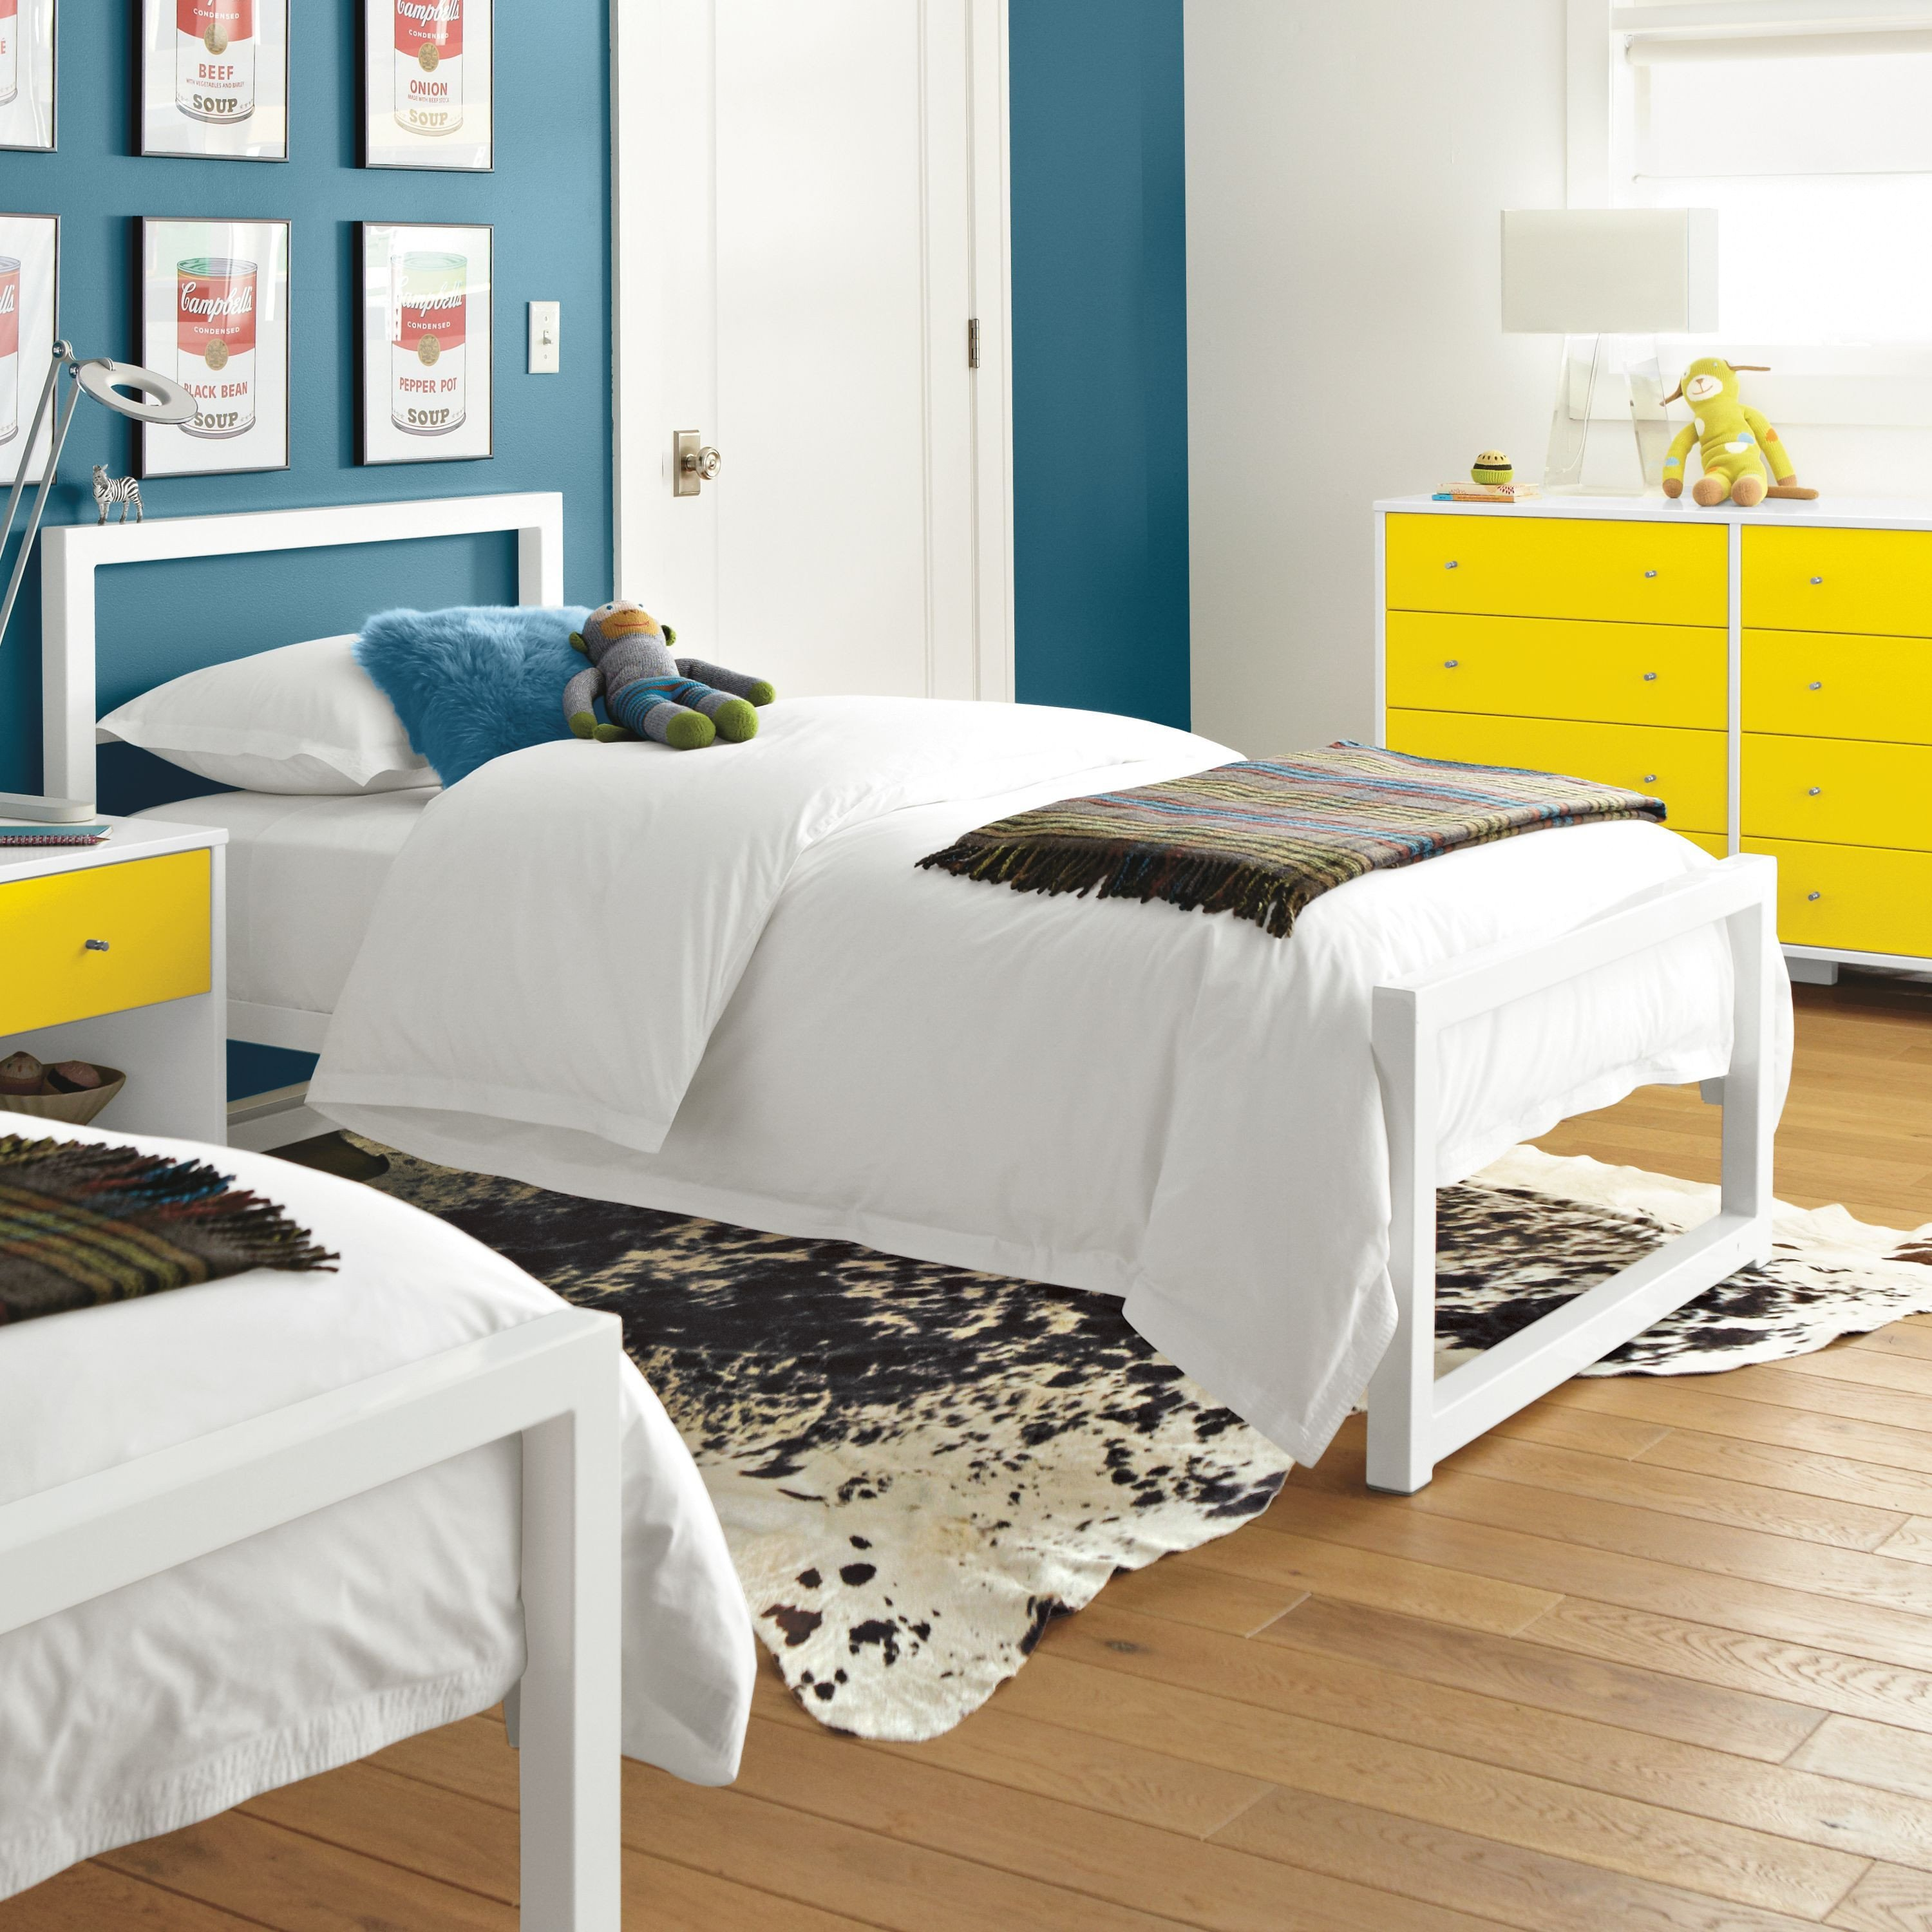 Childrens White Bedroom Furniture Awesome Room & Board Piper Bed In Colors In Kids